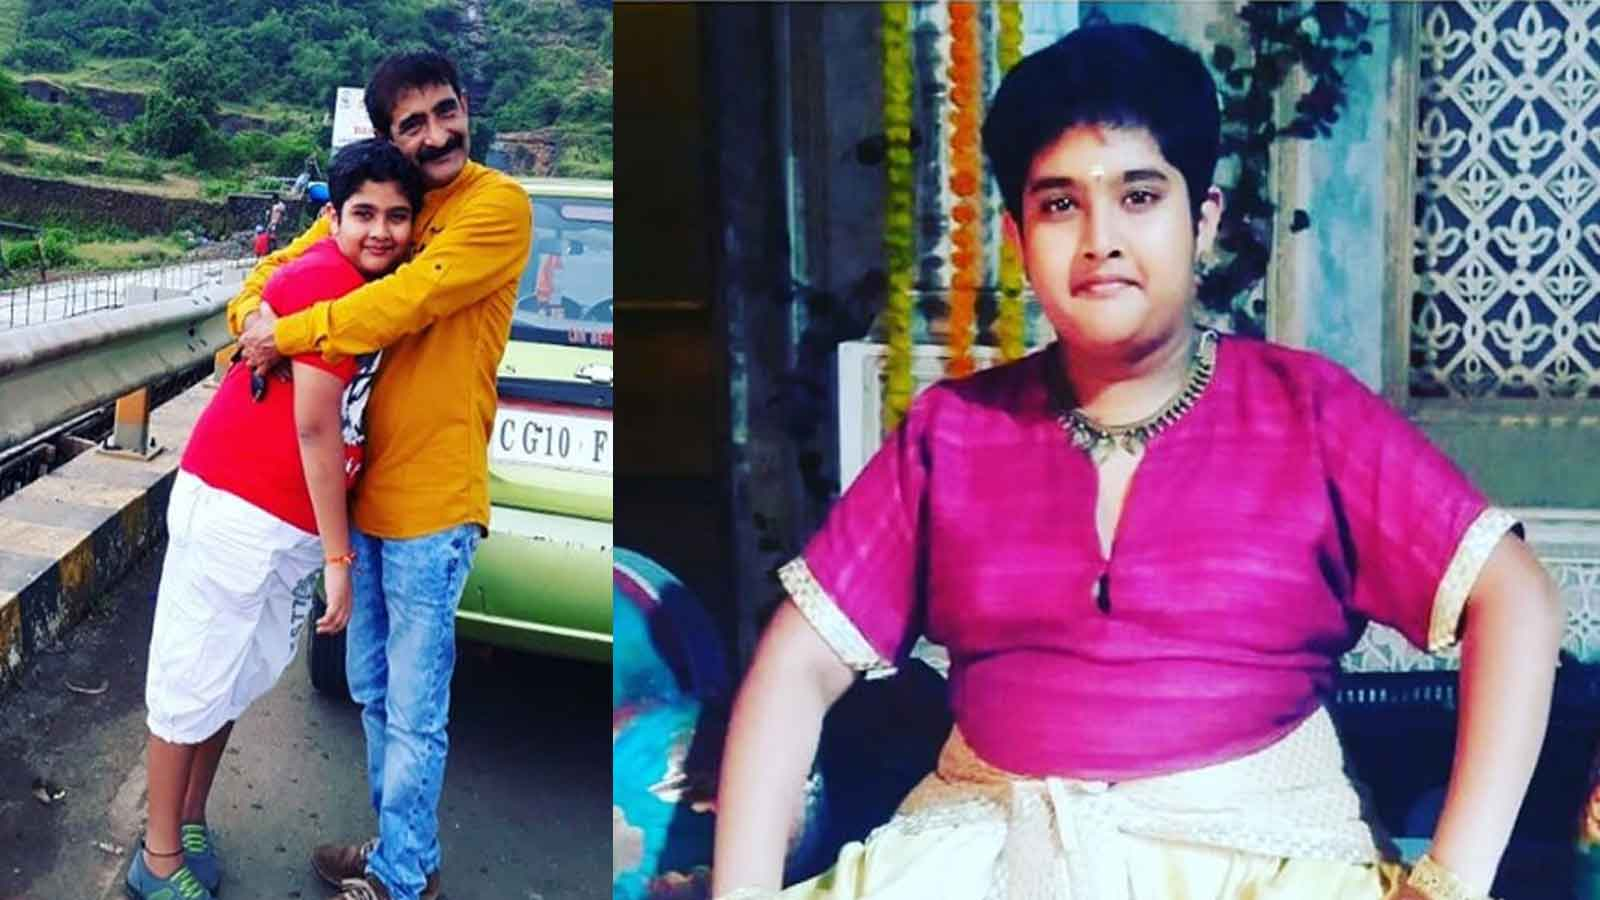 Baal Veer: Latest News, Videos and Baal Veer Photos | Times of India